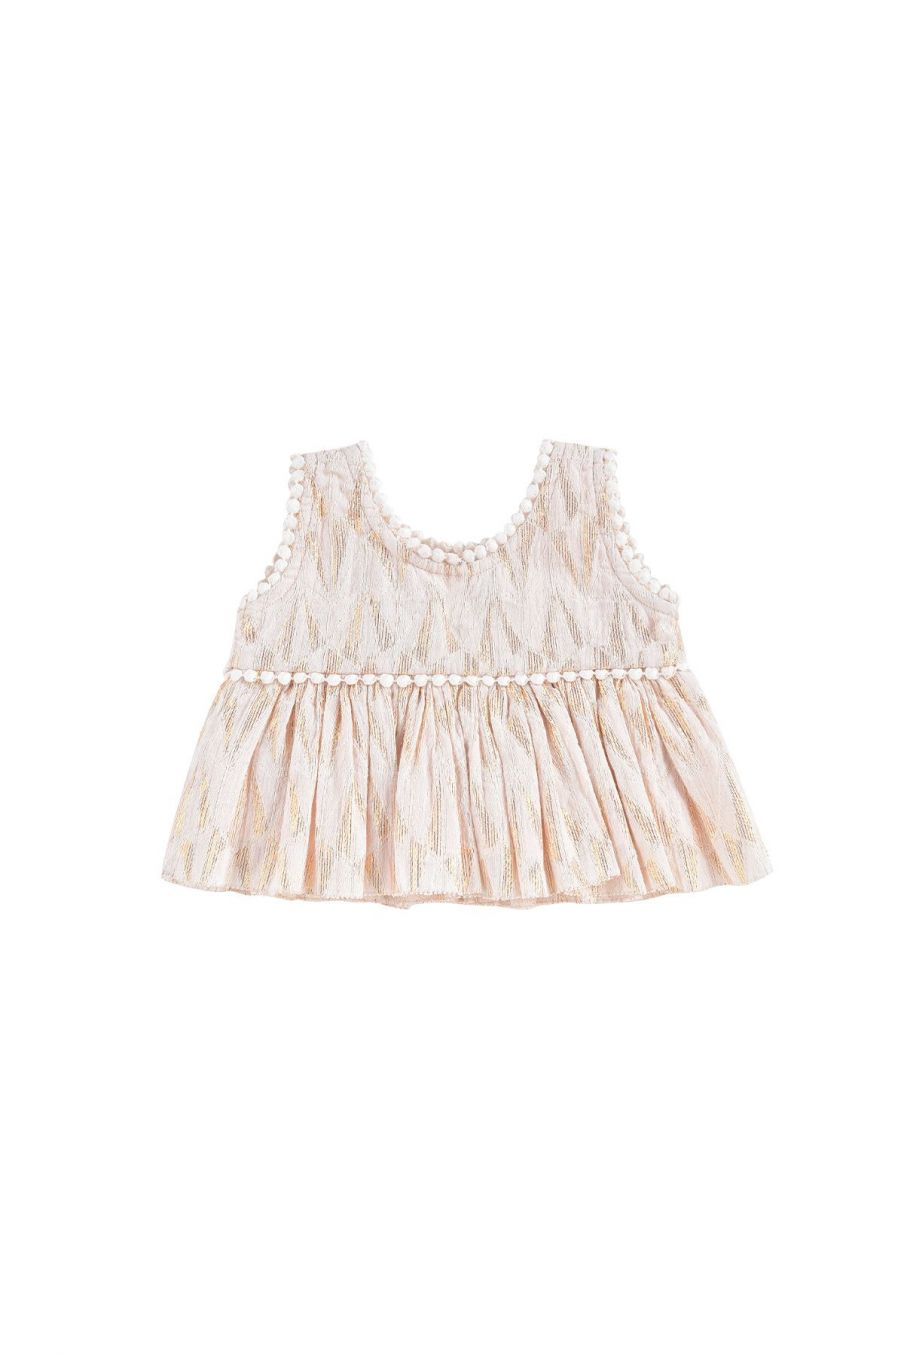 boheme chic vintage top bébé fille lomedeo blush psyche lurex